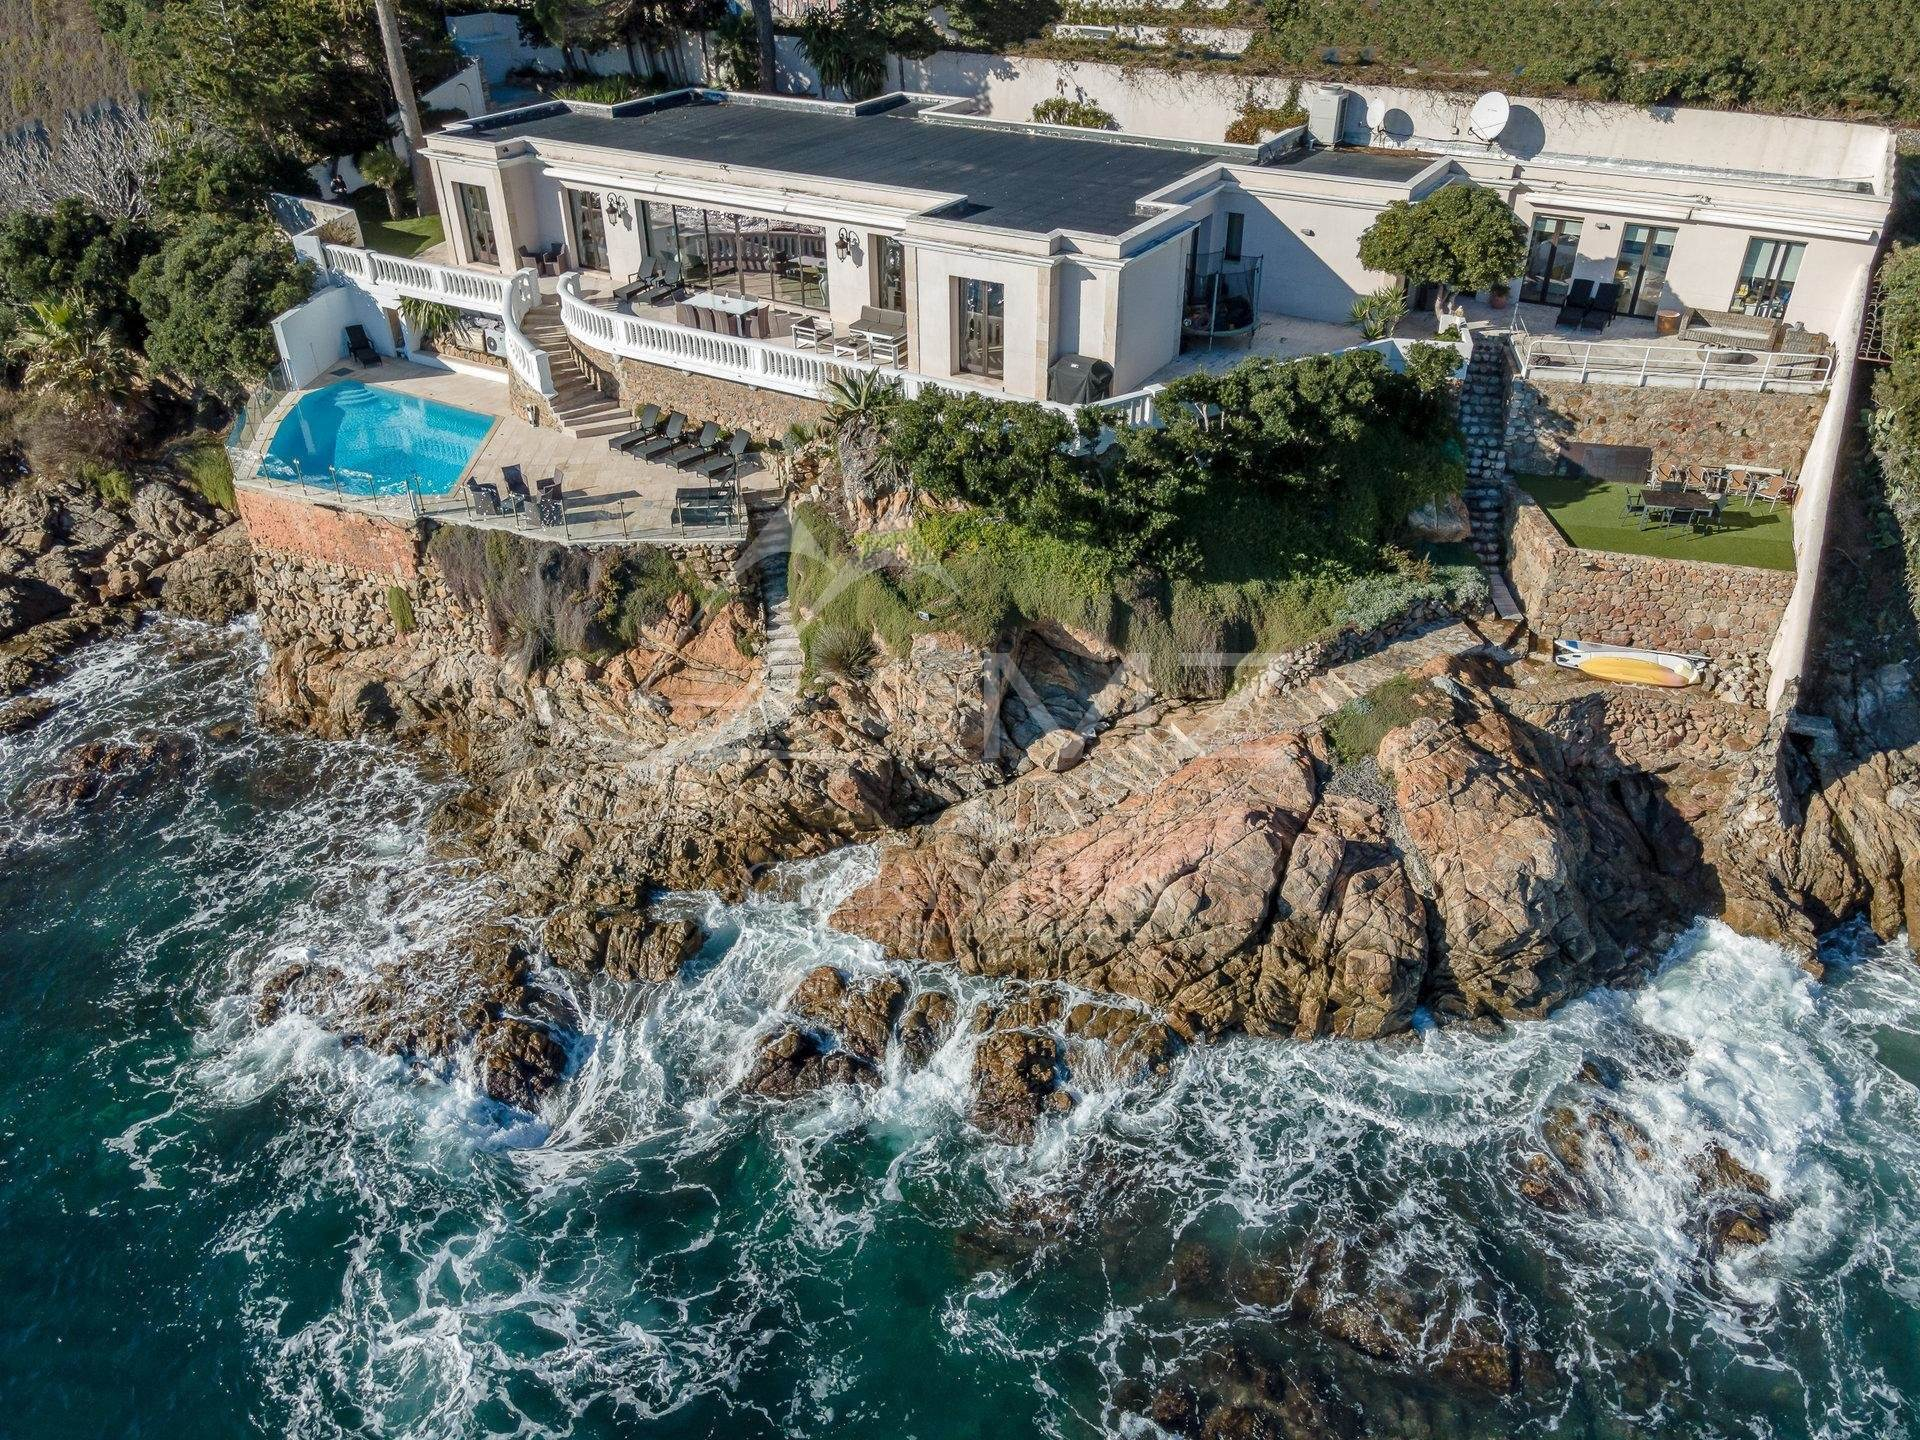 Villa/Townhouse for Sale at Cannes - Waterfront property Cannes, Alpes-Maritimes,06400 France